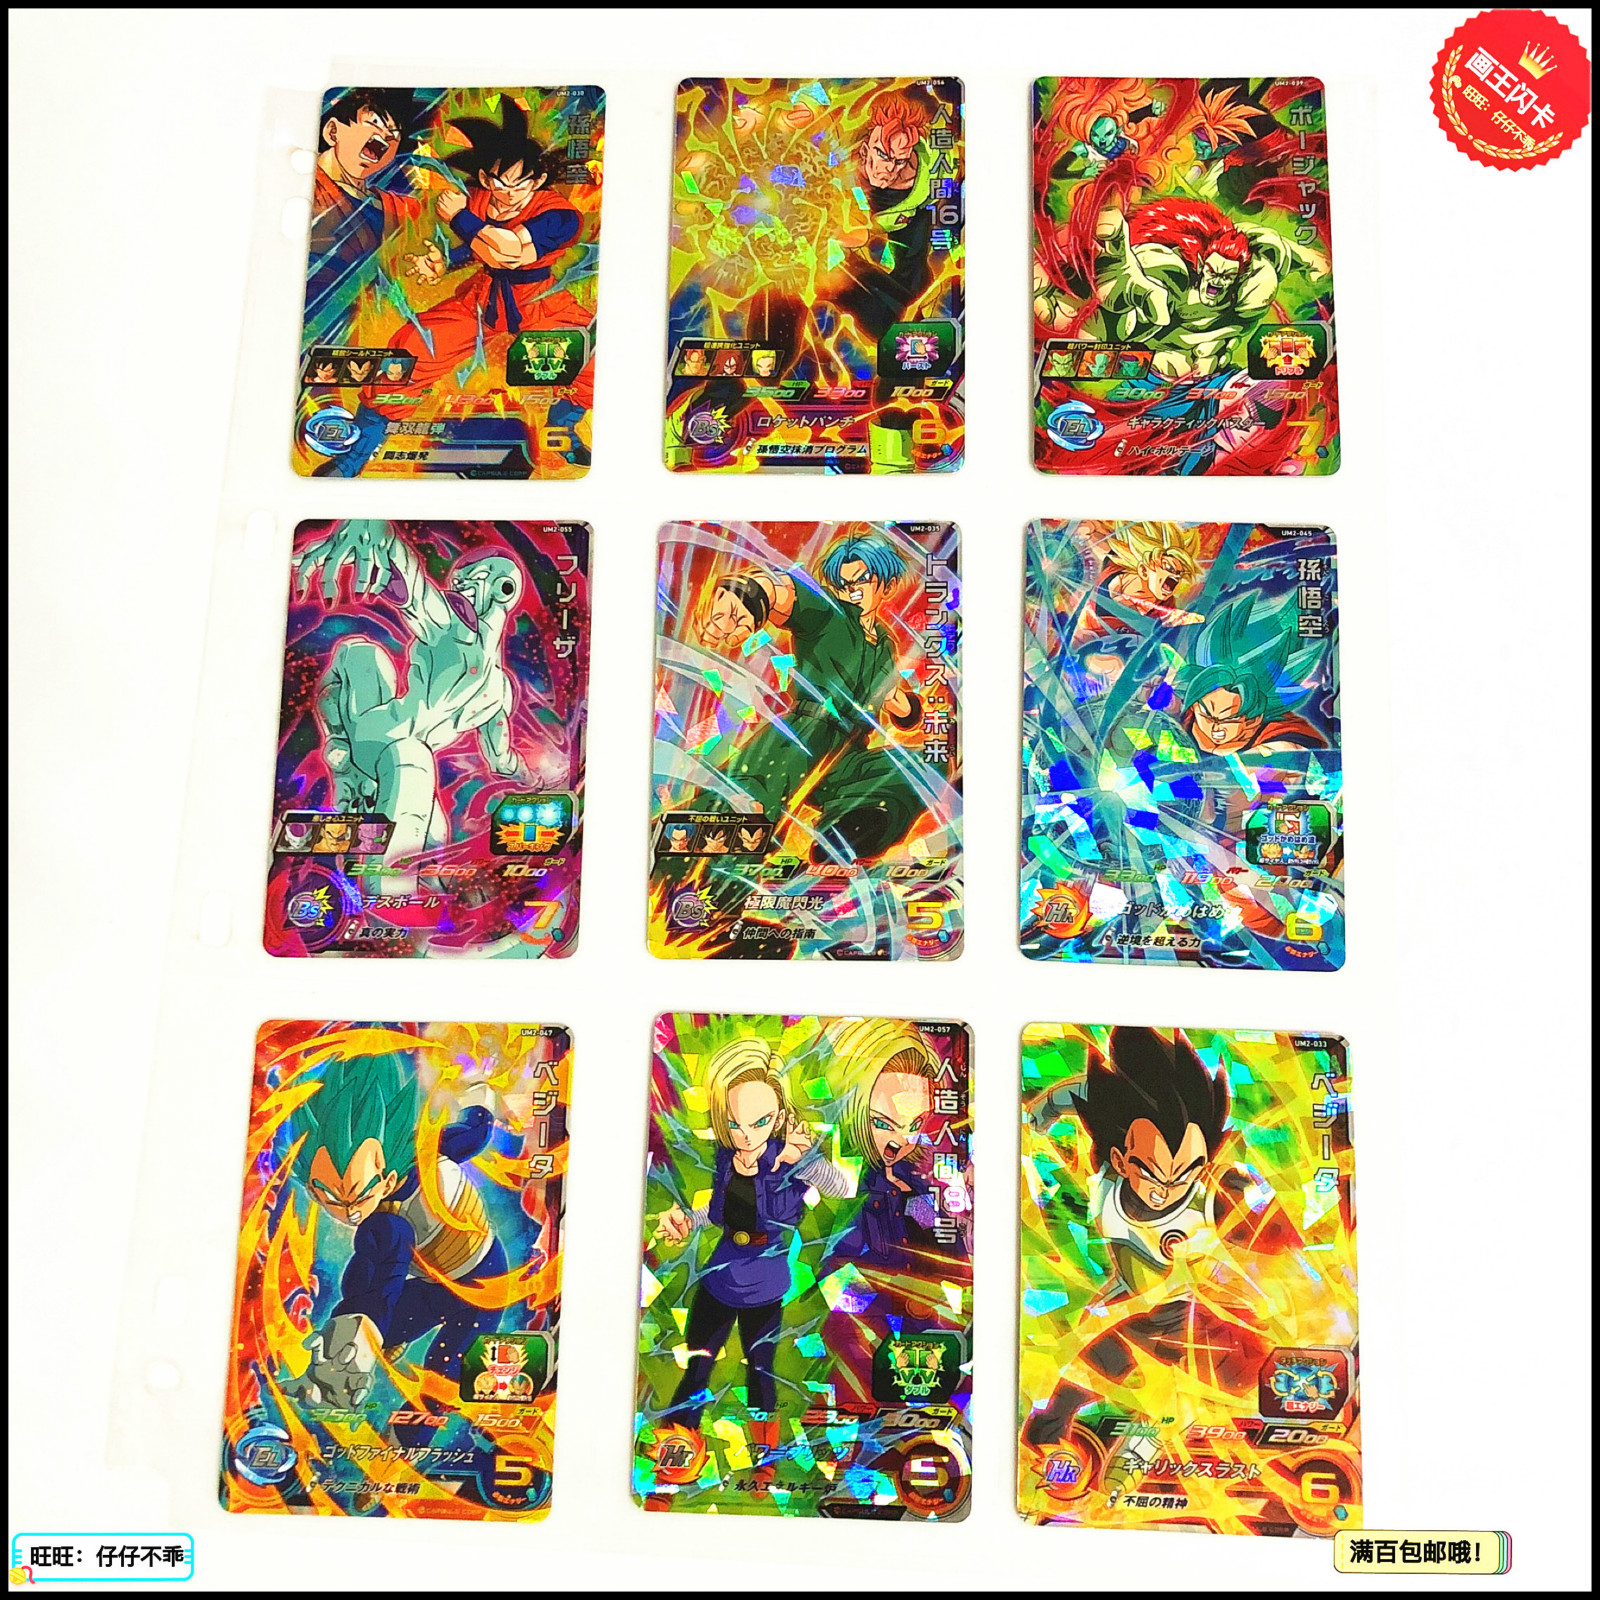 Japan Original Dragon Ball Hero Card SR Flash 3 Stars UM2 God Super Goku Toys Hobbies Collectibles Game Collection Anime Cards